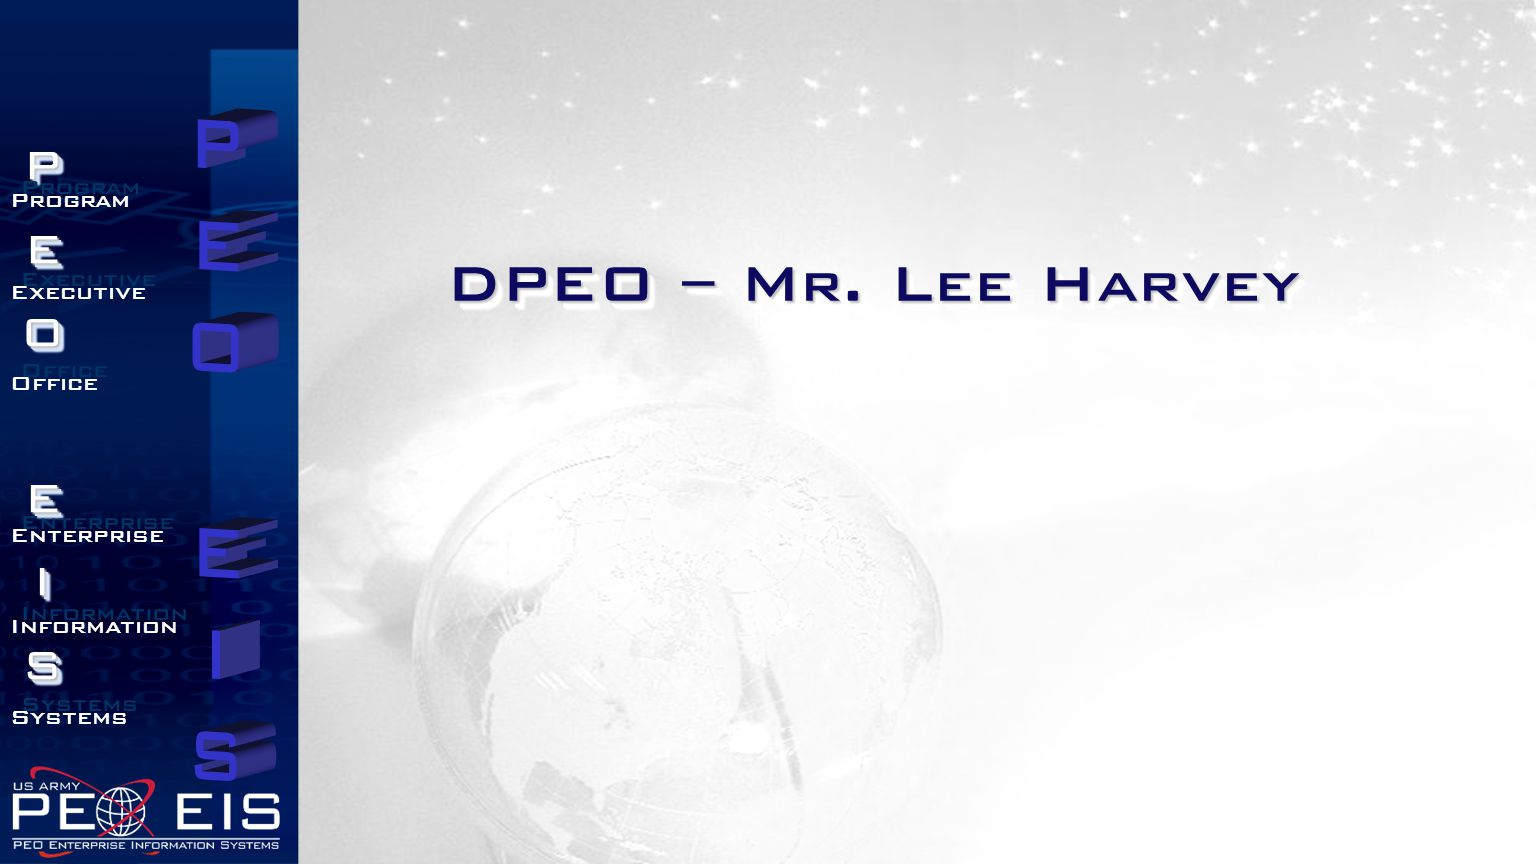 DPEO – Mr. Lee Harvey